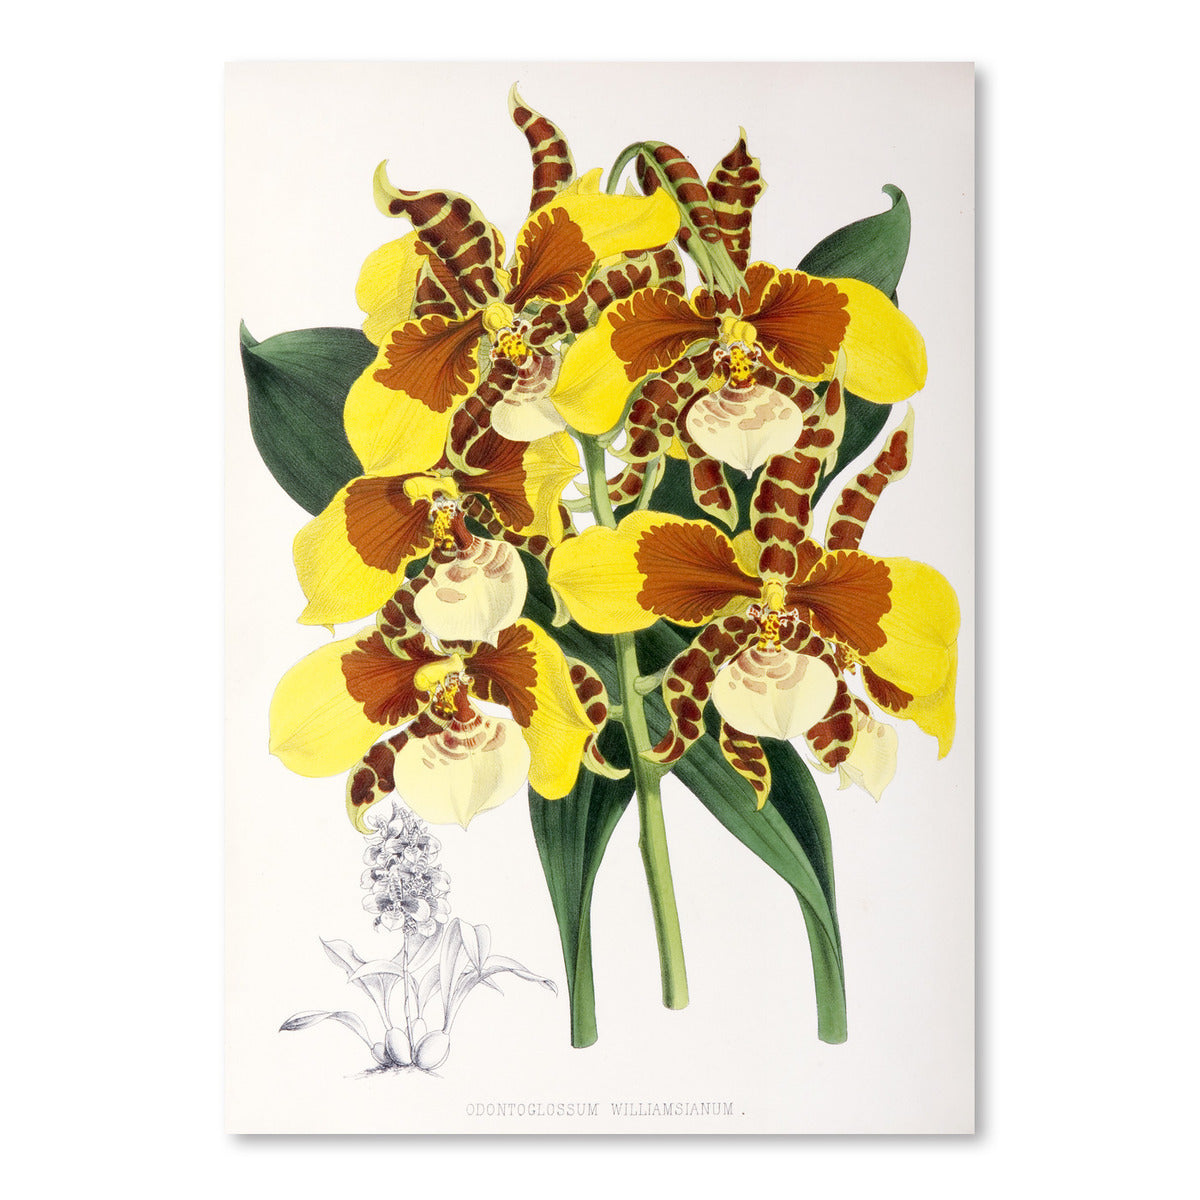 Fitch Orchid Odontoglossum Williamsianum by New York Botanical Garden Art Print - Art Print - Americanflat